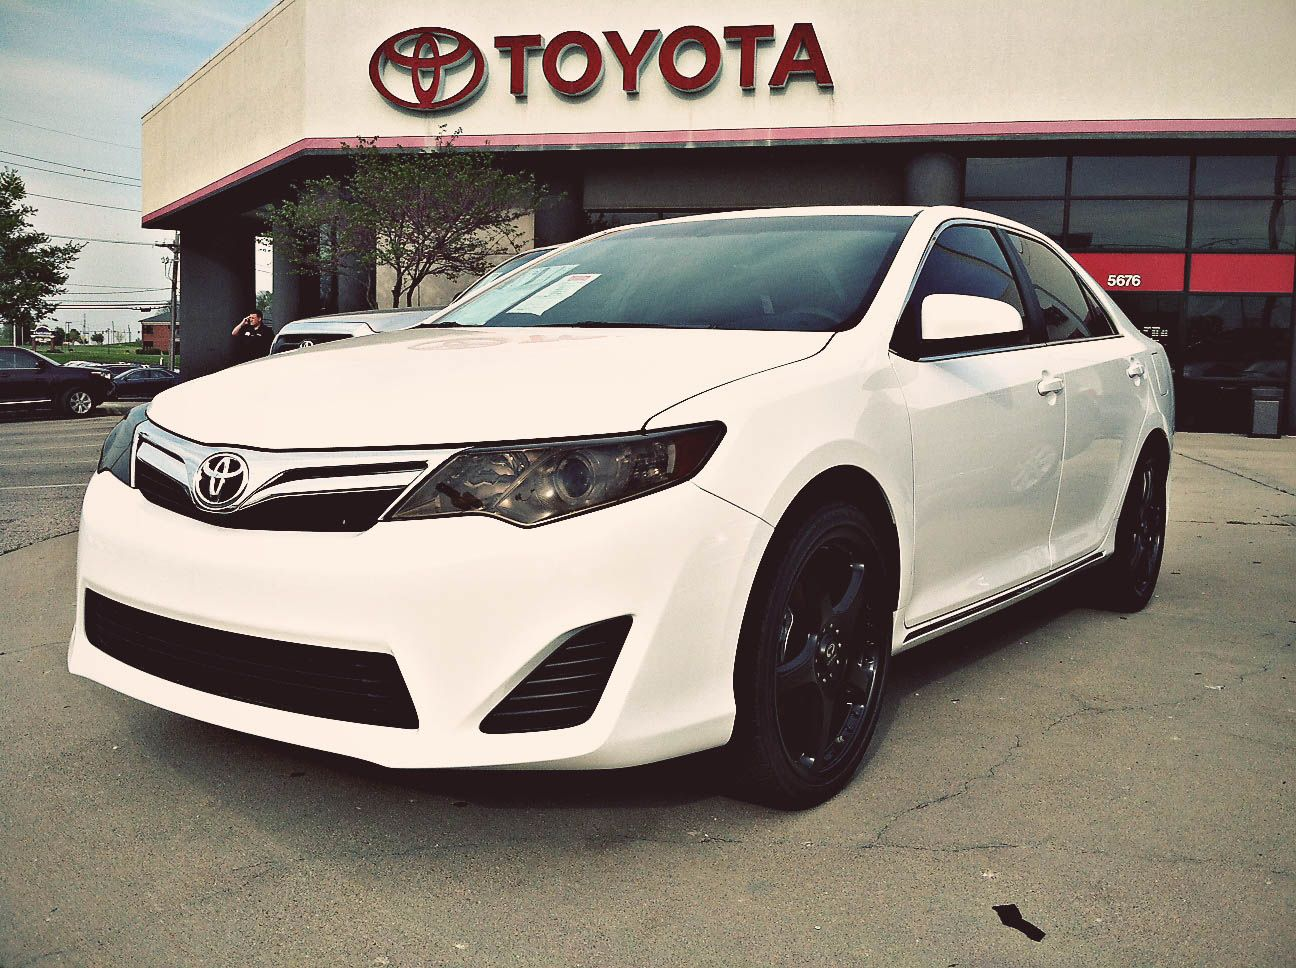 toyota camry that doesn't look like mine Camry 2012